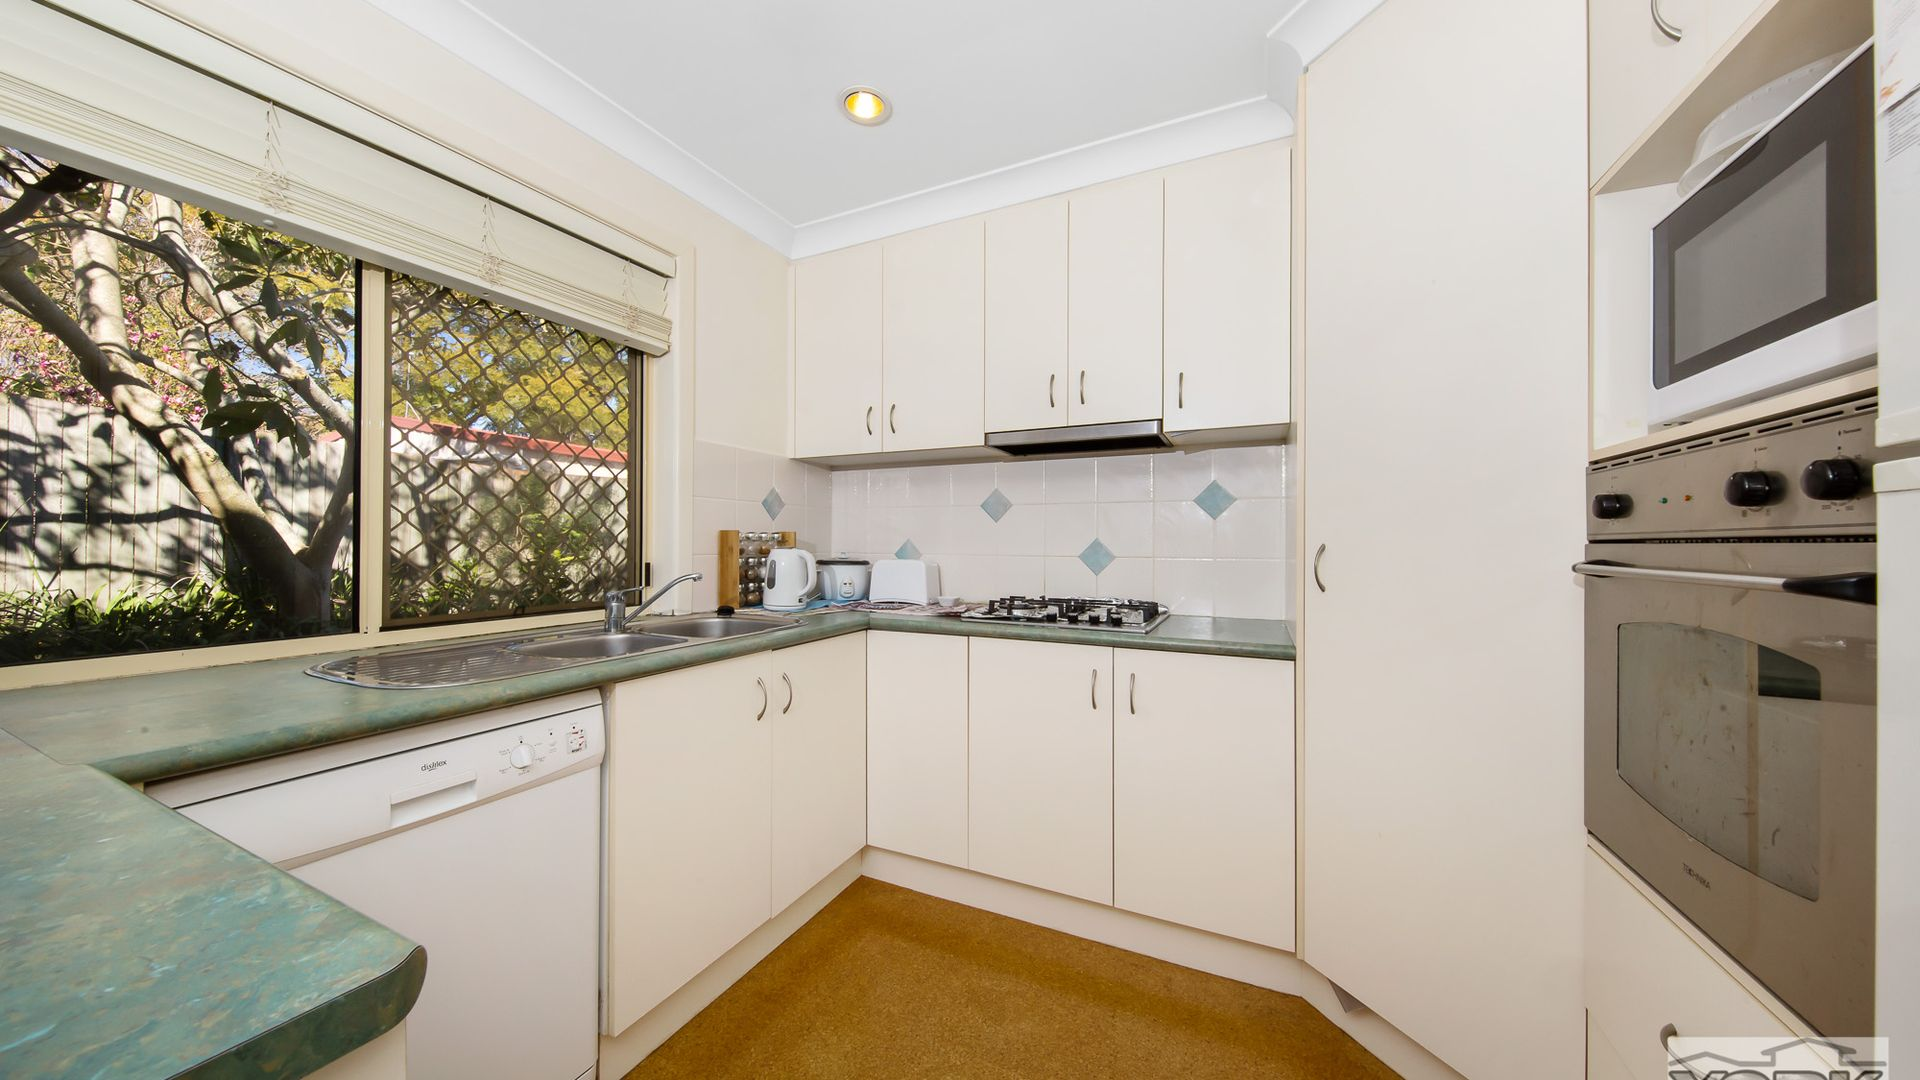 3/330 Hume Street, Centenary Heights QLD 4350, Image 2